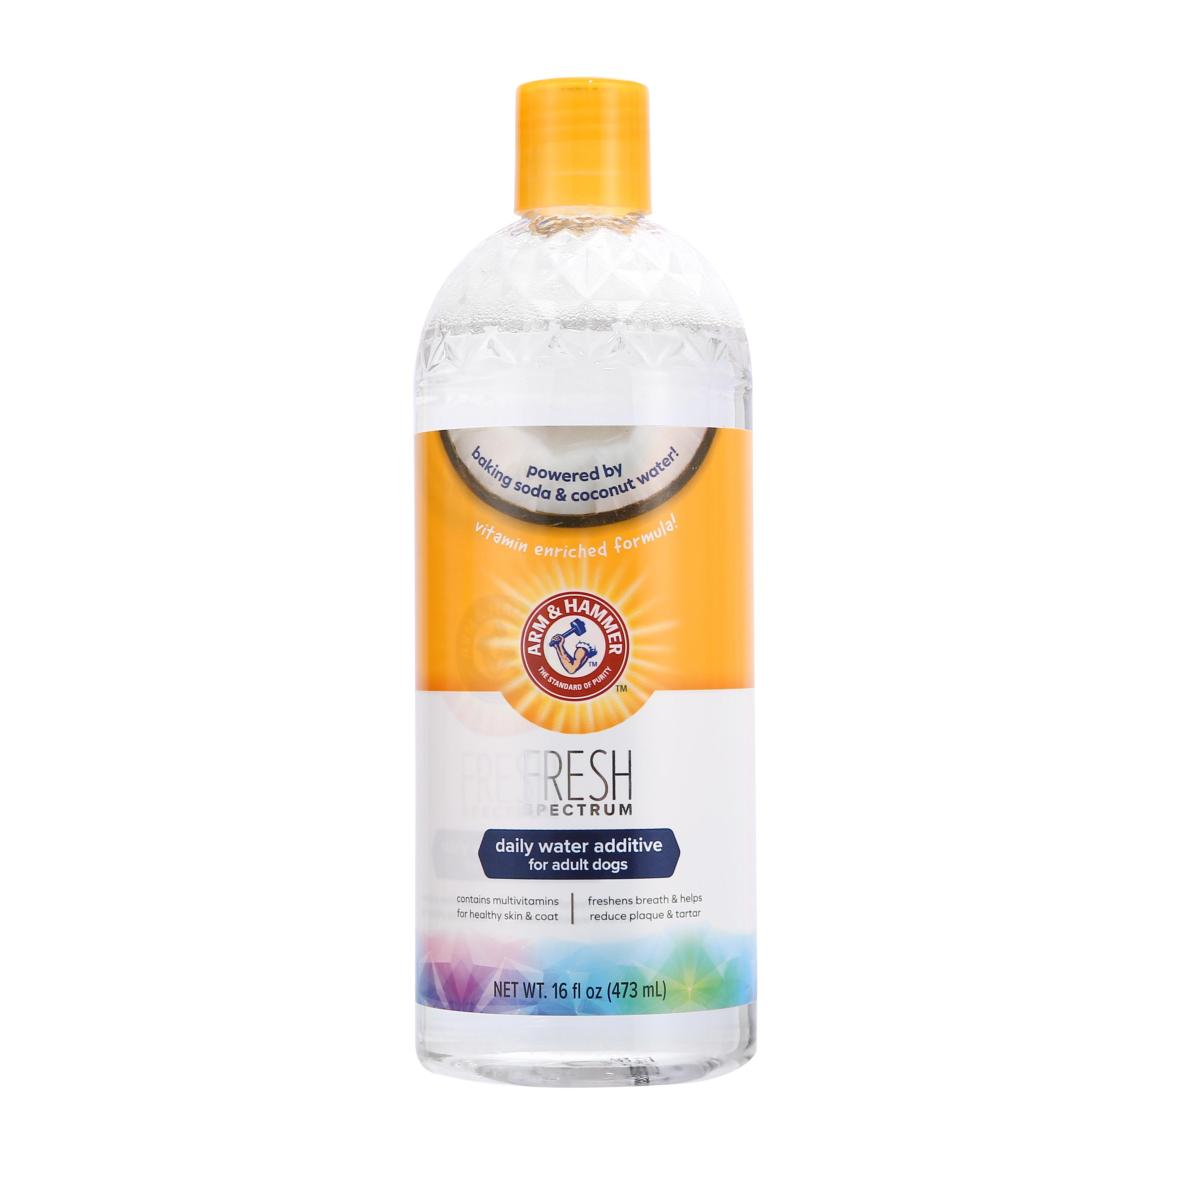 Arm & Hammer Daily Water Additive for Adult Dogs 473ml